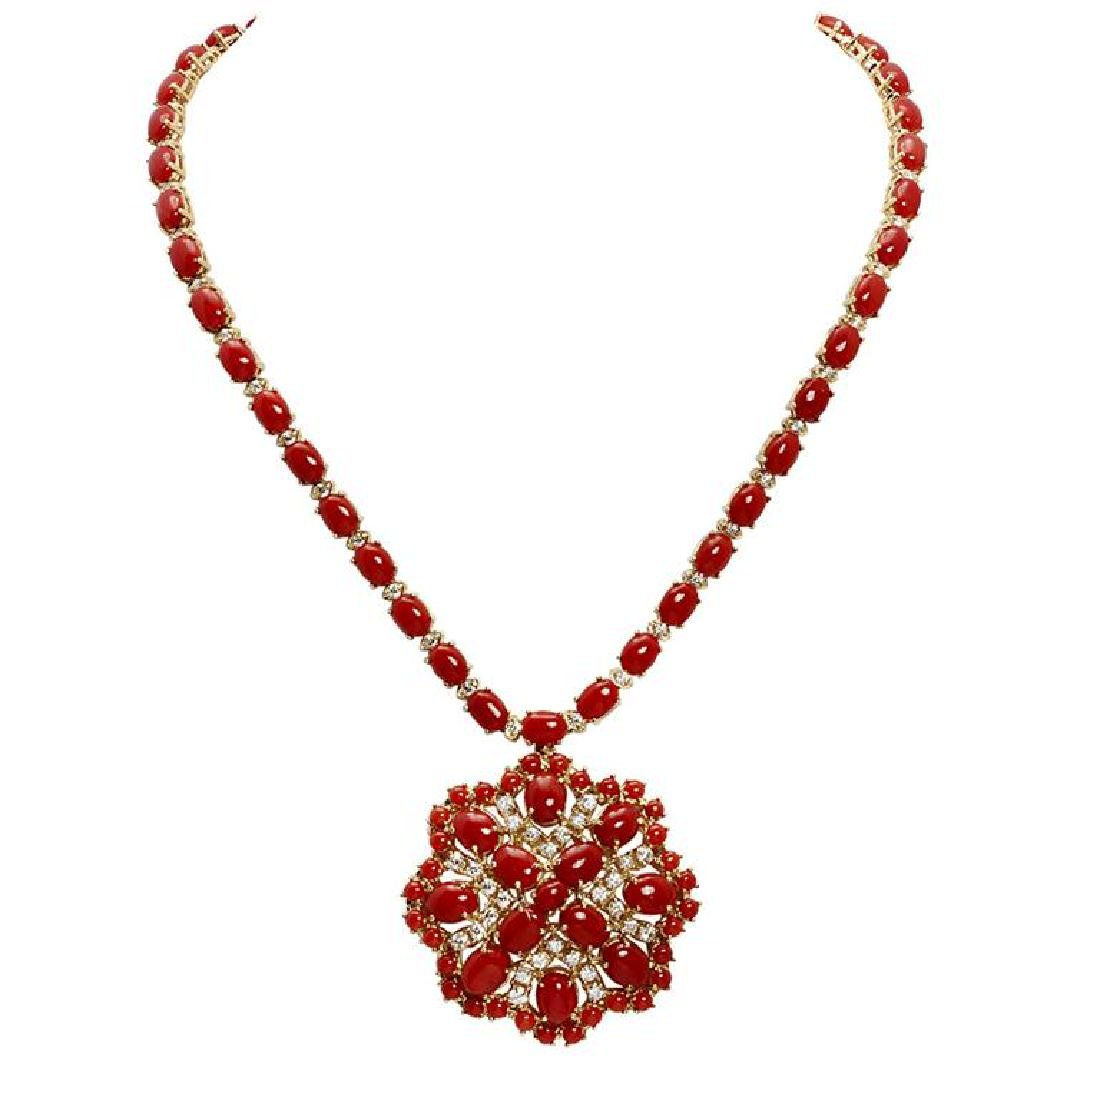 14k Yellow Gold 46.91ct Coral 3.14ct Diamond Necklace